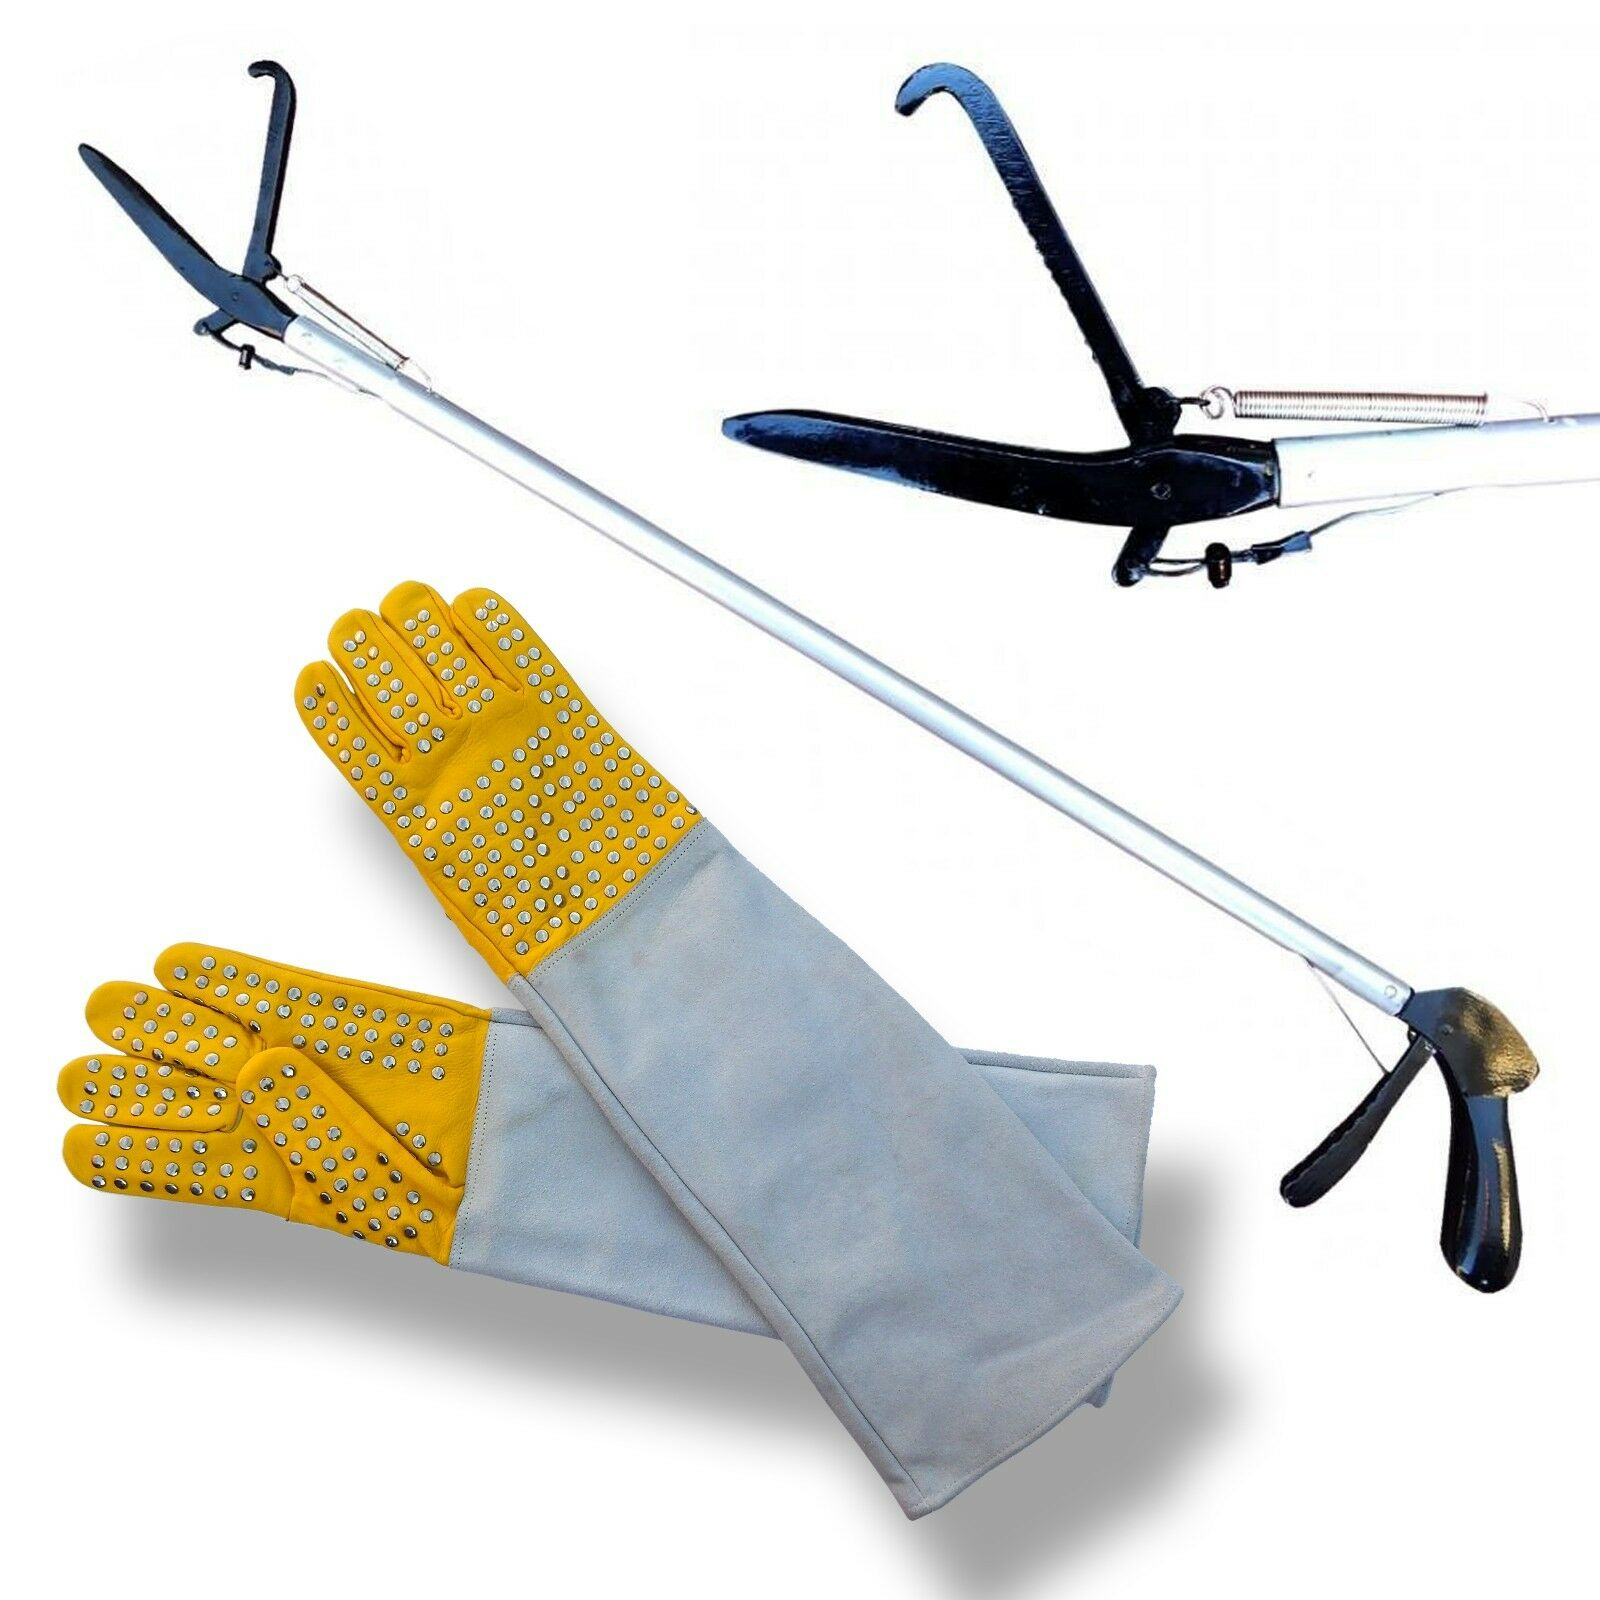 ARD 24 Basic SNAKE TONGS Reptile Grabber Rattle Snake Catcher with Free G s